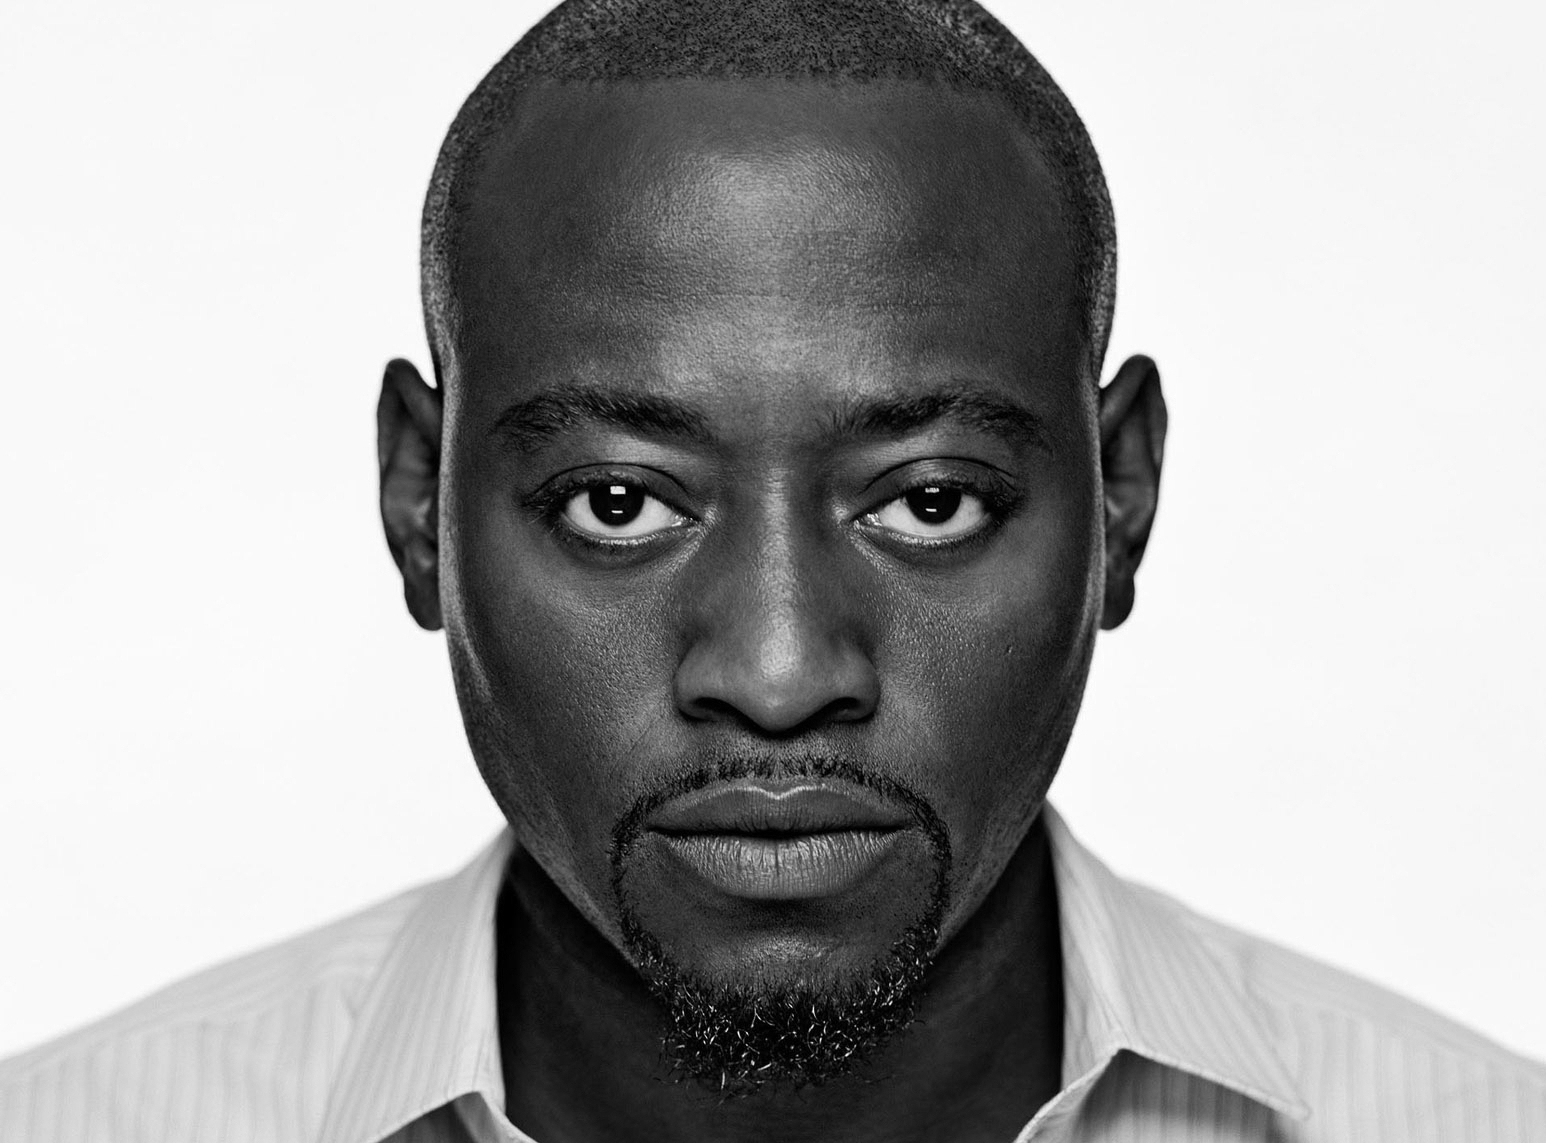 """OMAR EPPS - EXECUTIVE PRODUCER/ACTOR   Omar Epps is an award-winning actor who starred in the hit FOX medical drama """"House"""" for 8 seasons. Epps received an NAACP Image Award for """"Outstanding Supporting Actor in a Drama Series"""" in both 2007 and 2008. As someone who grew up fatherless, the issues in """"Daddy Don't Go"""" resonate with Omar personally and are close to his heart."""